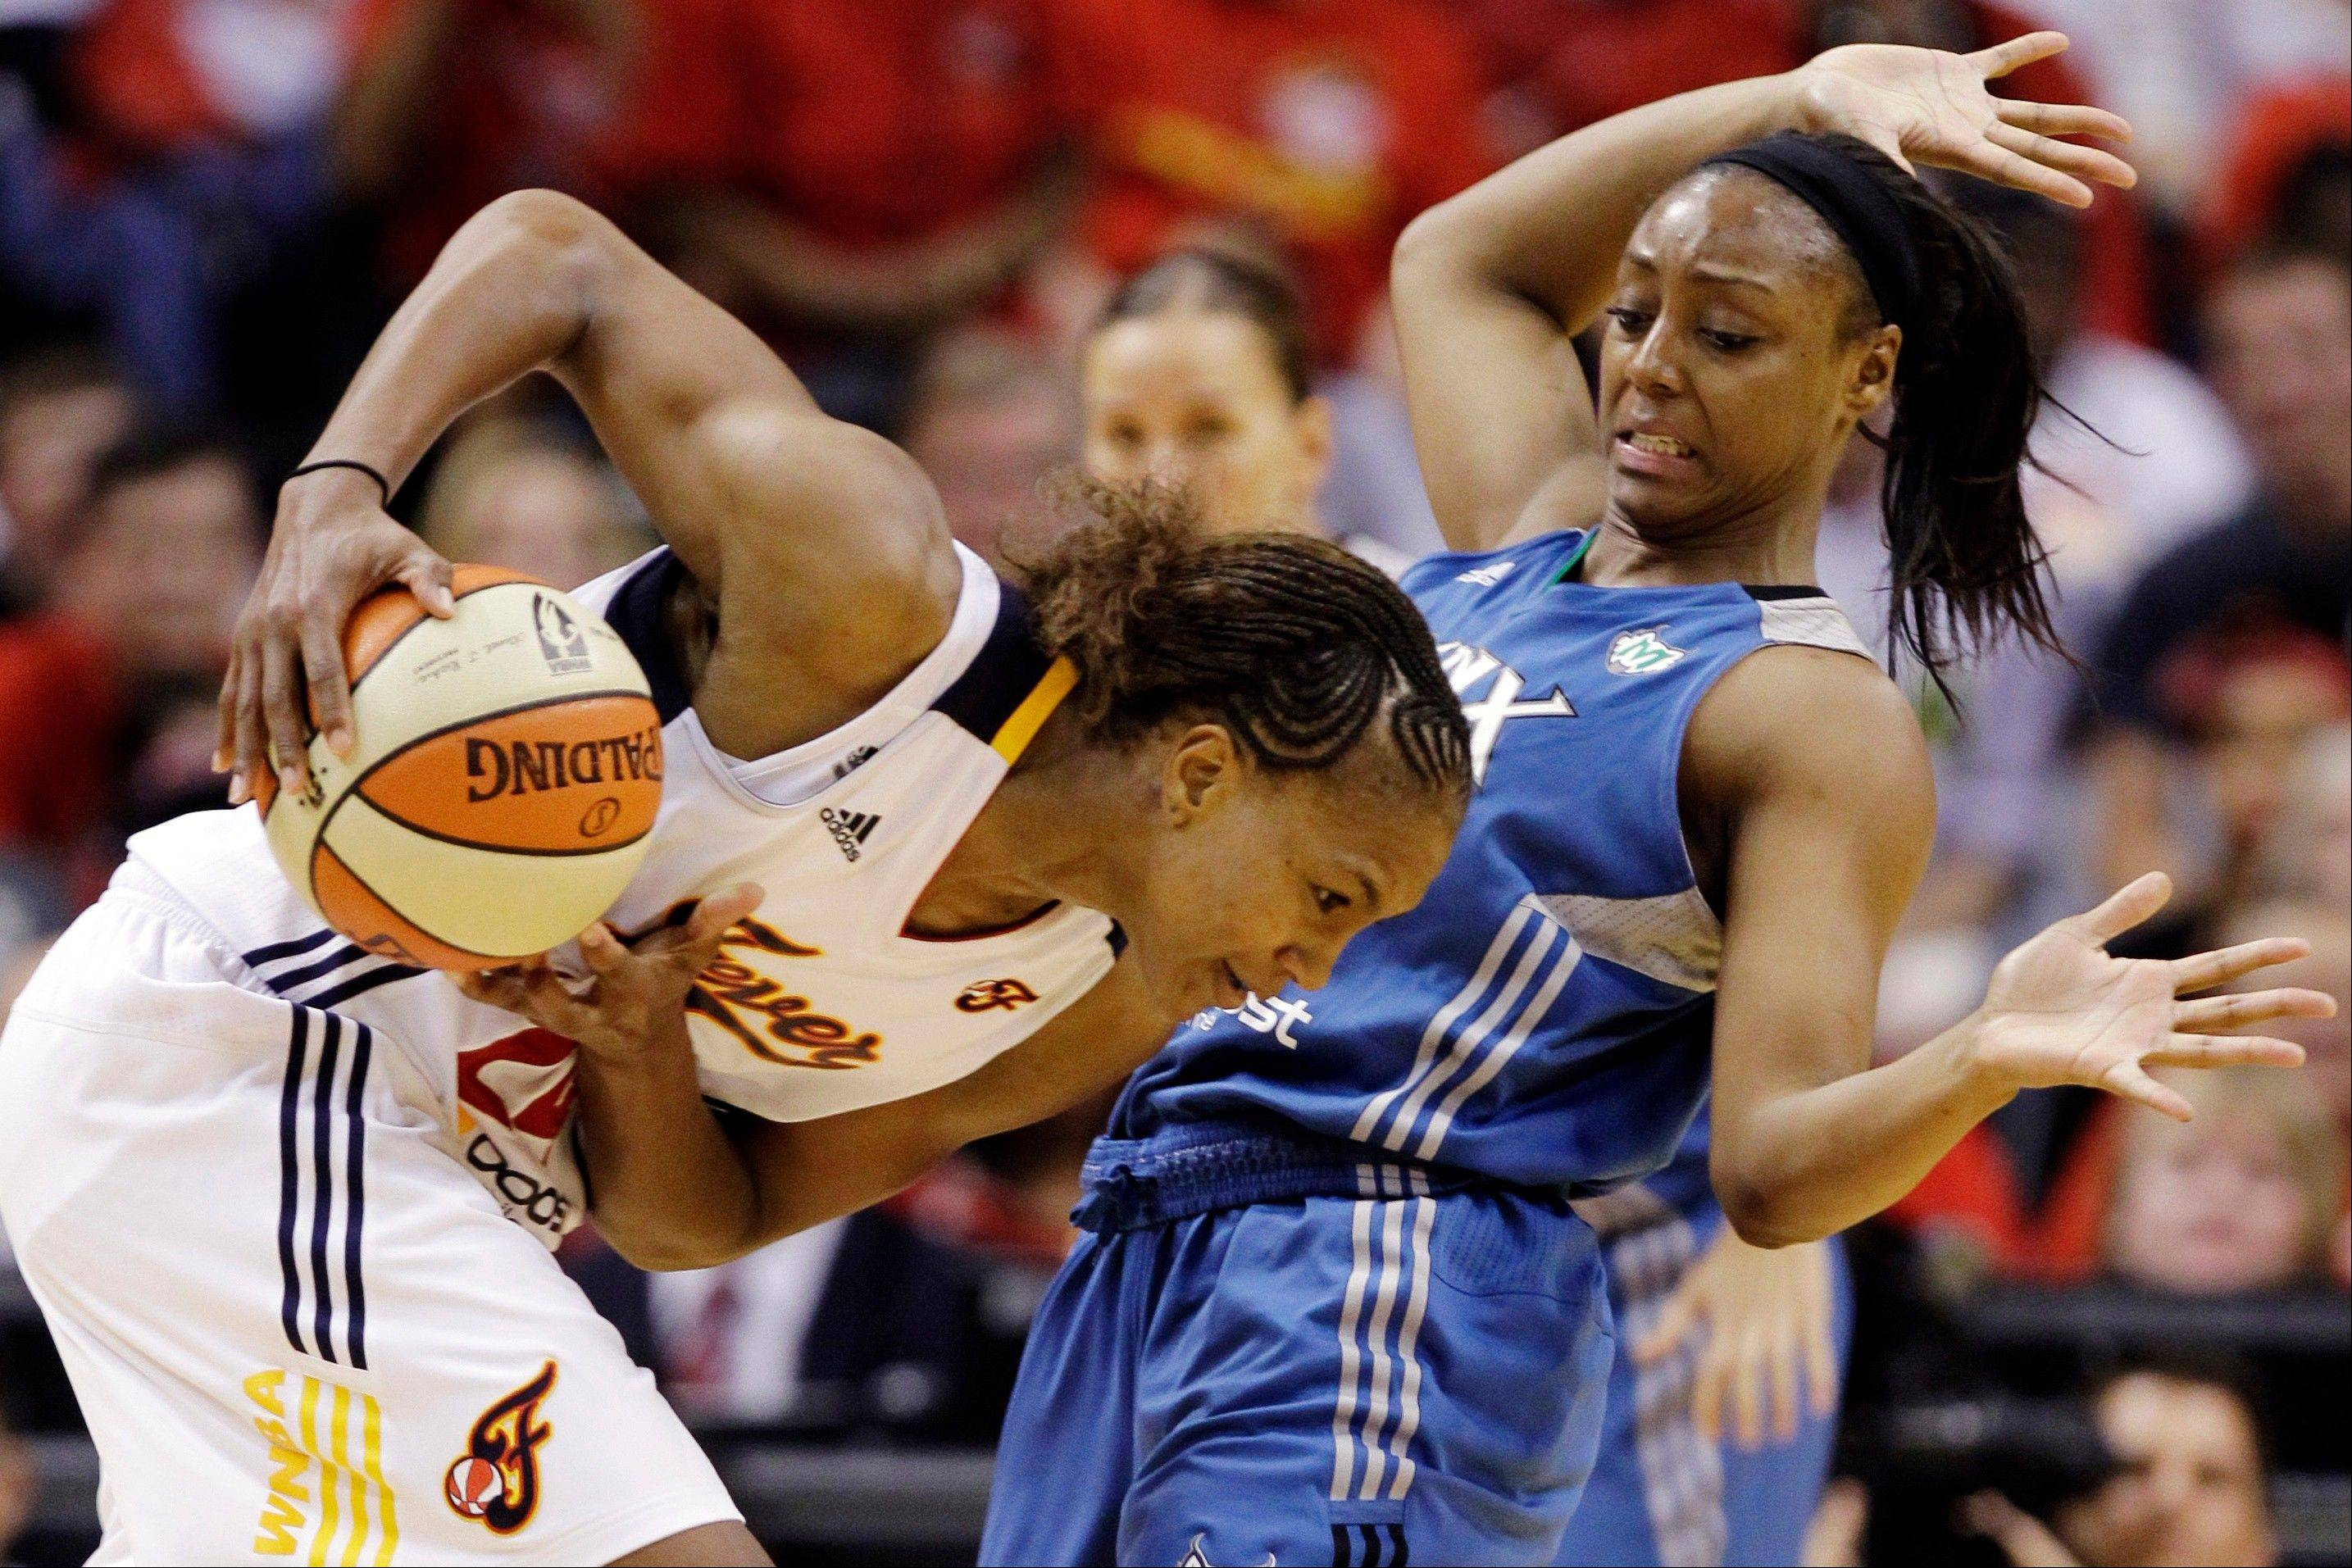 Indiana Fever forward Tamika Catchings, left, tries to make room as she is defended by Minnesota Lynx guard Monica Wright in the third quarter of Game 4 of the WNBA basketball Finals in Indianapolis, Sunday, Oct. 21, 2012.